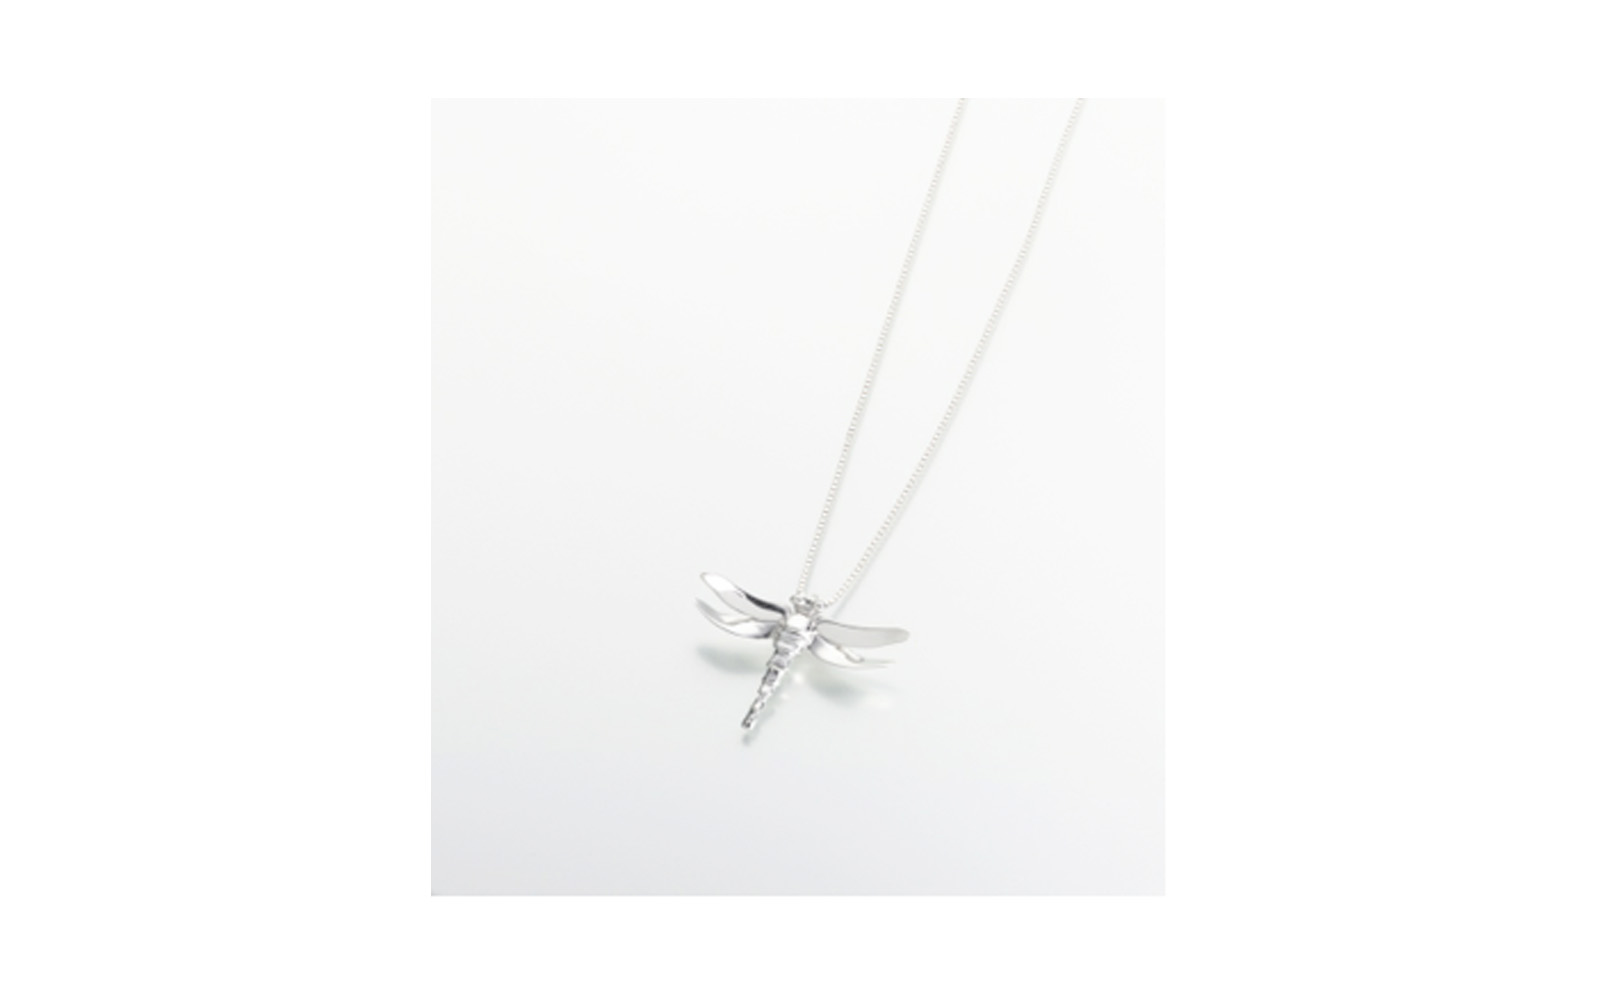 "Sterling Silver Dragon Fly Pendant   Measures 1-5/8""W x 1-1/4""H x 5/16""D, Chain not included,  $160"